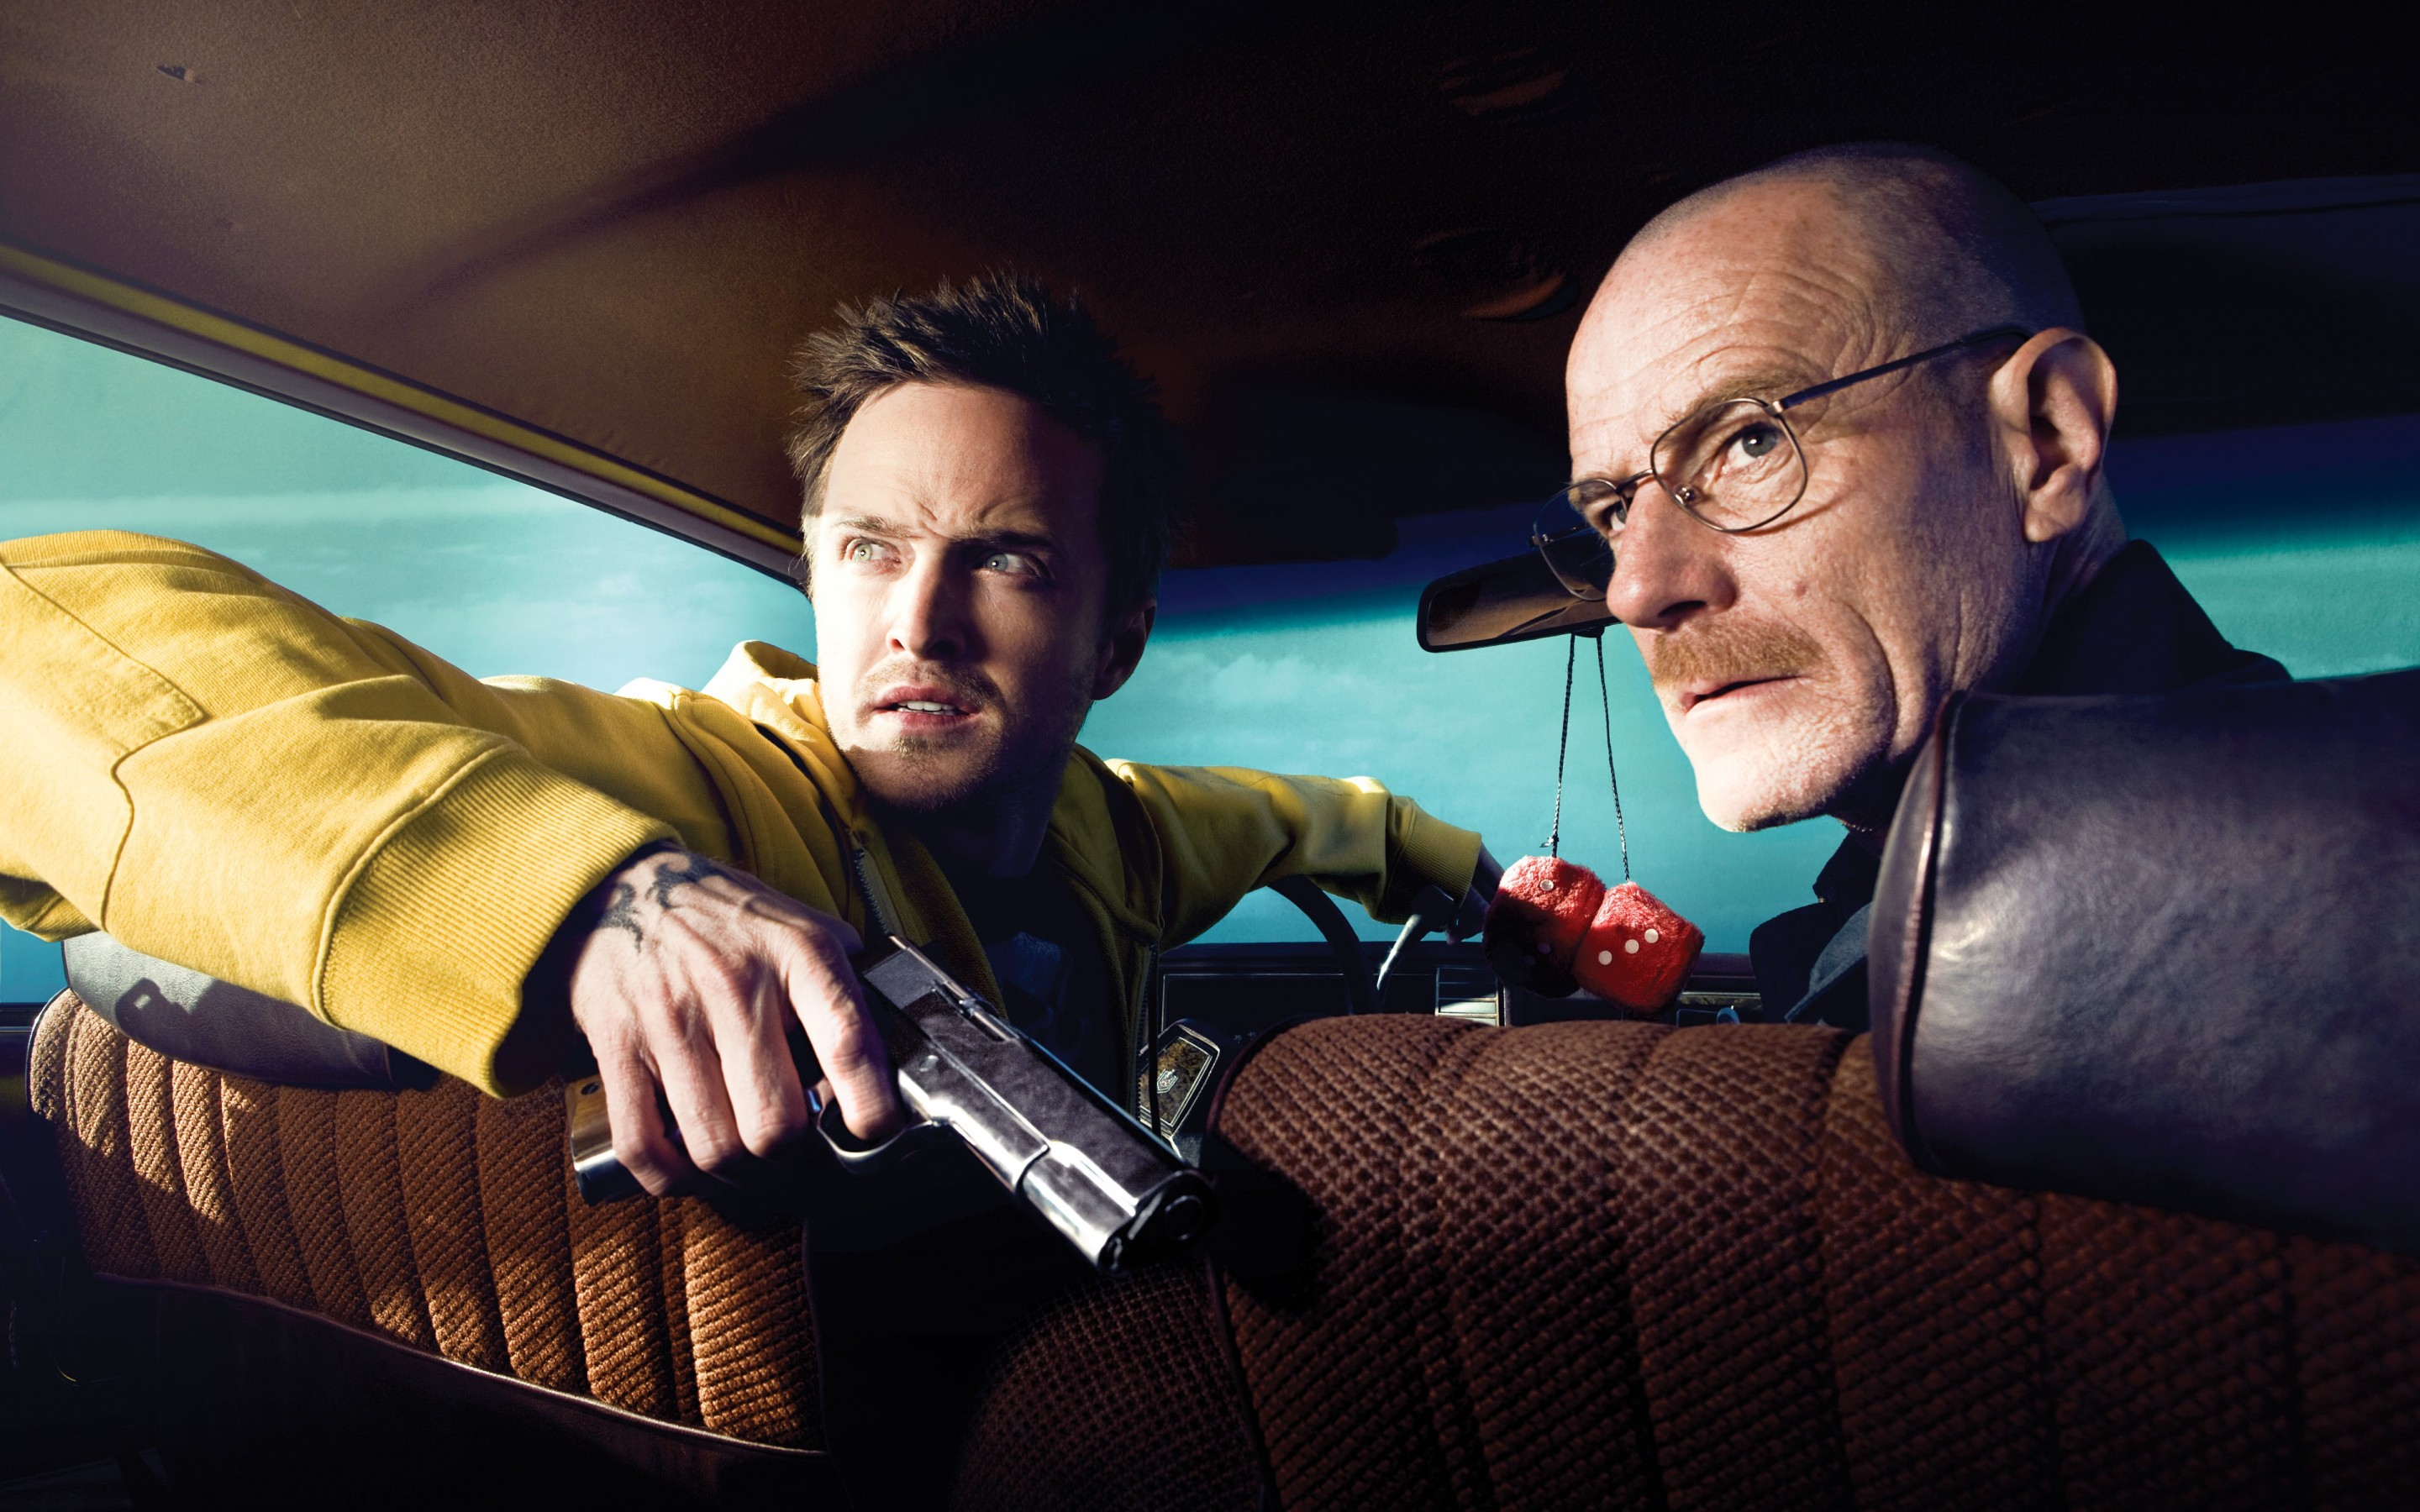 Breaking Bad - Jesse Pinkman & Walter White Wallpaper for Desktop 2880x1800